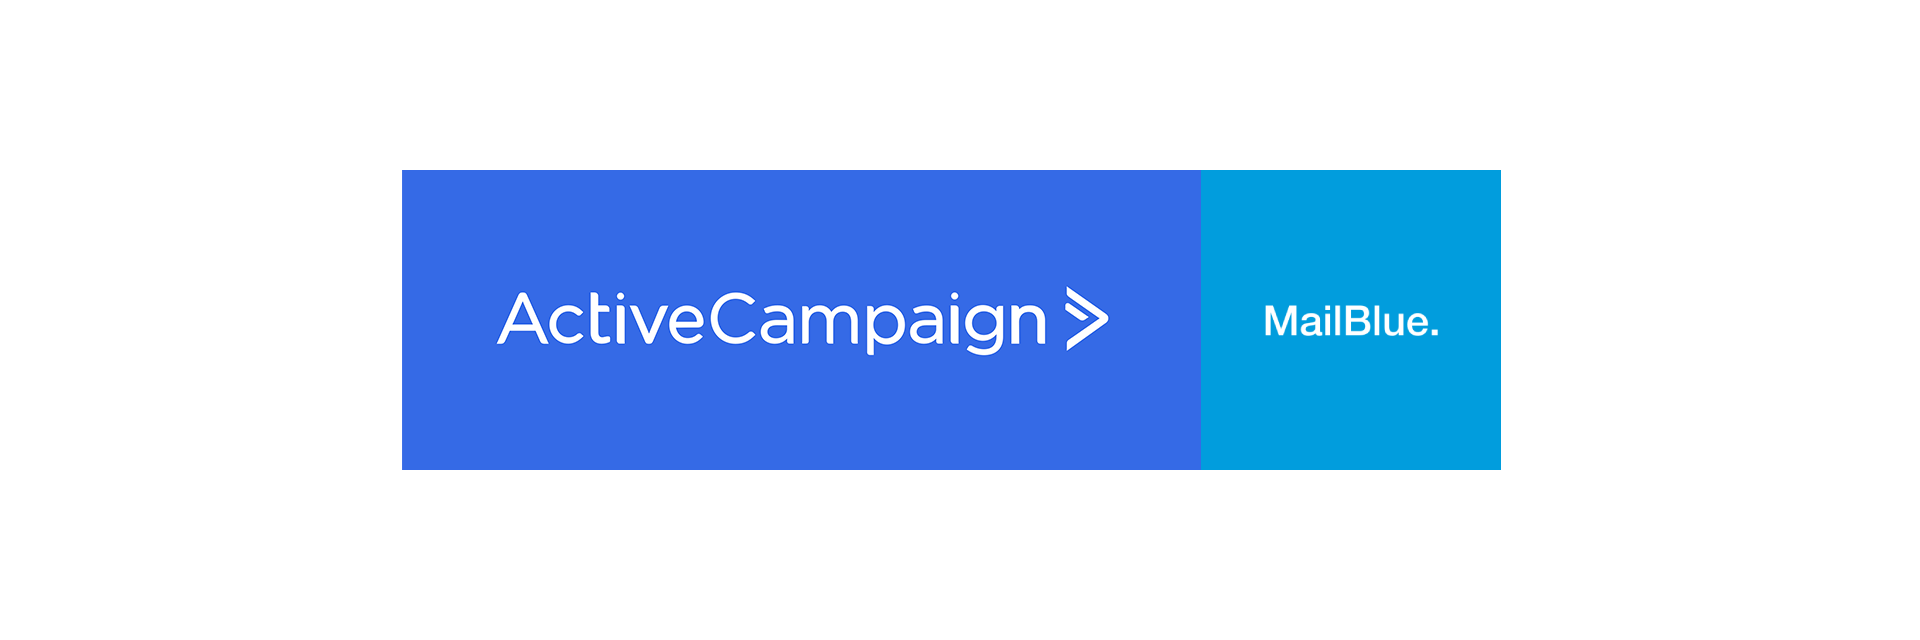 ActiveCampaign Mailblue review